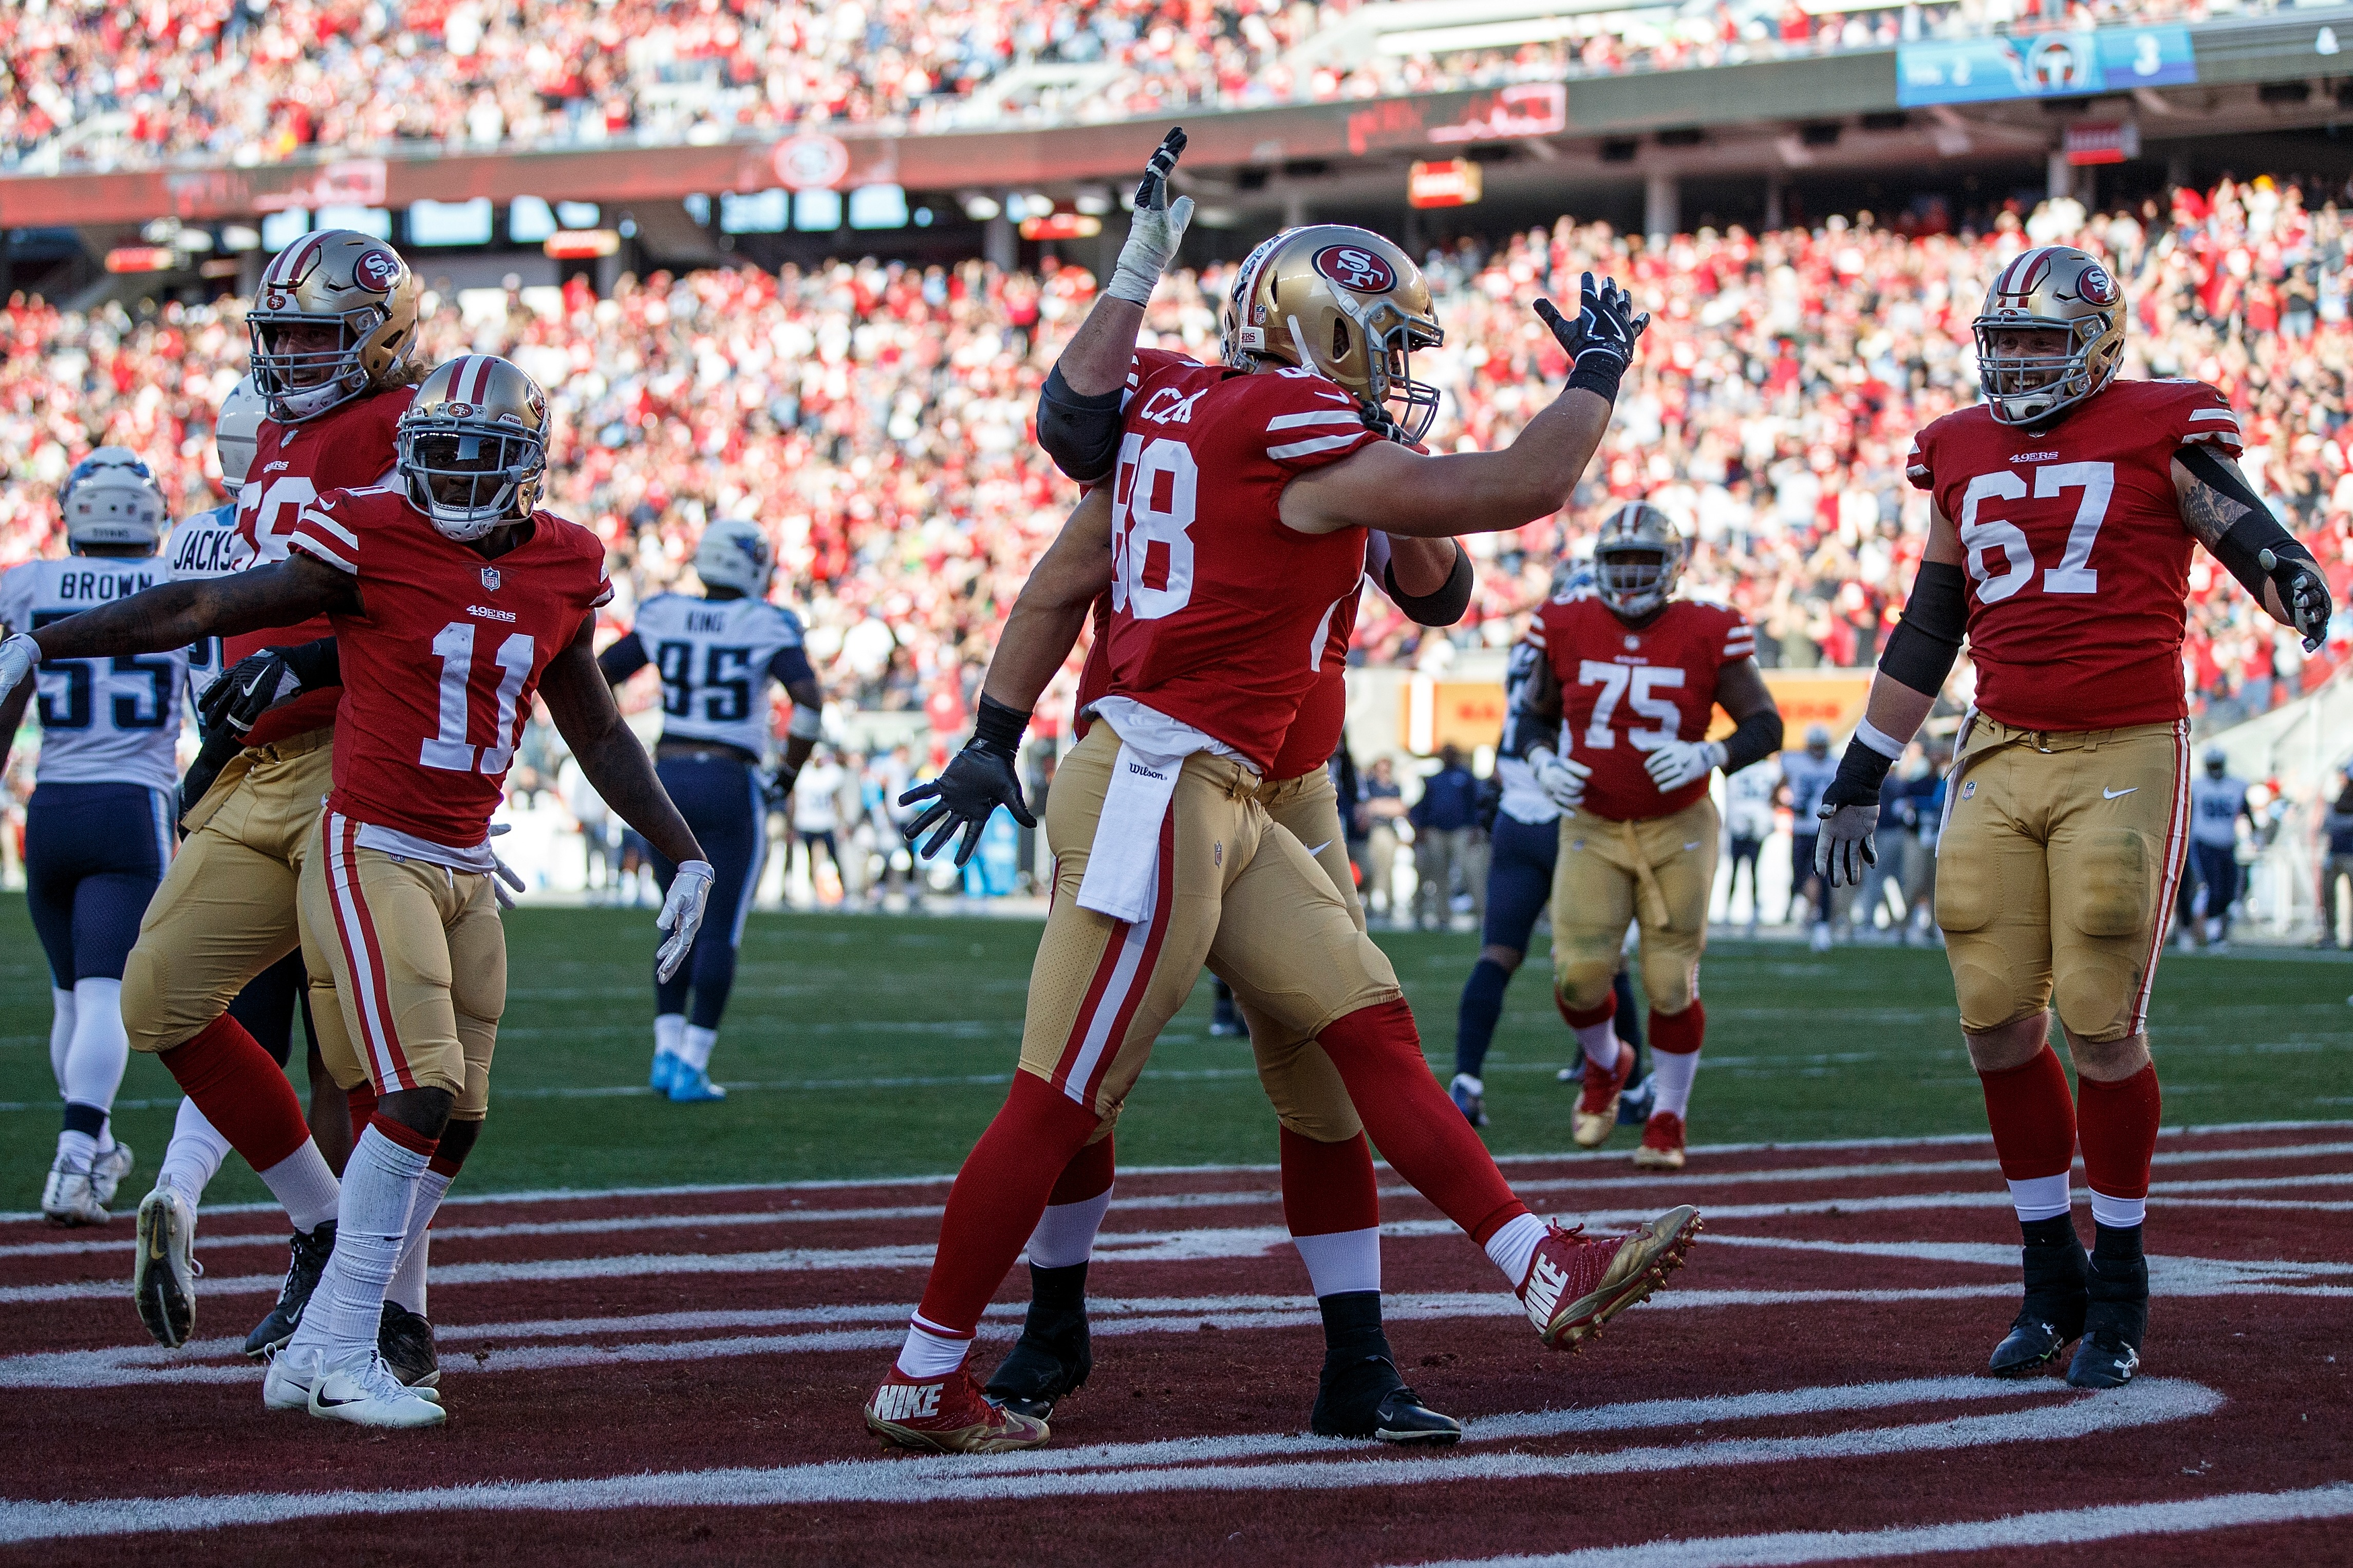 49ers Robbie Gould wins it in Jimmy Garoppolo first home start